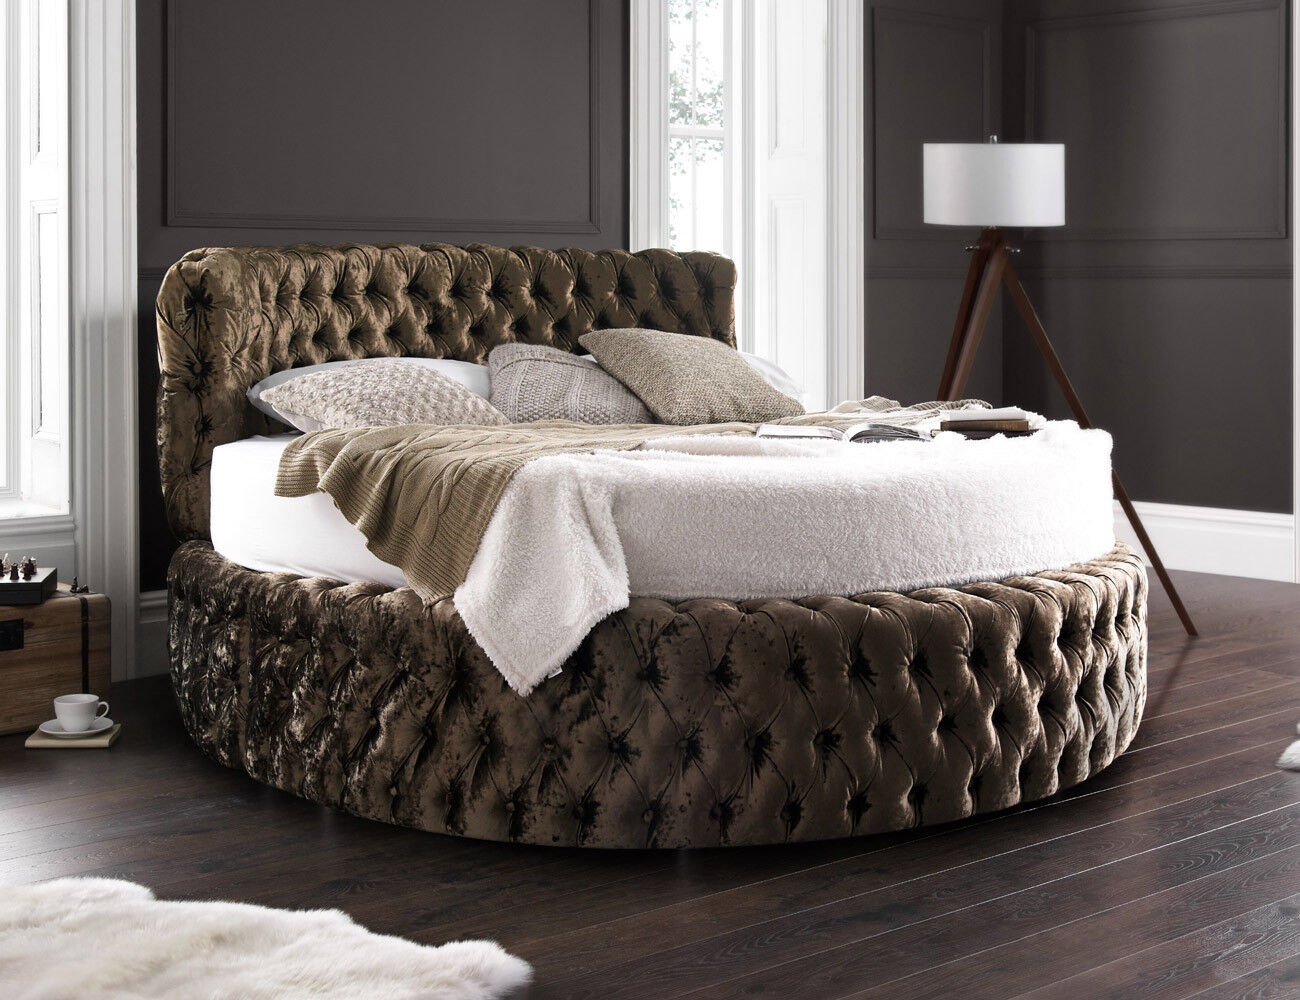 Glamour chesterfield 7ft round bed with headboard 210cm various colours fabrics ebay Bedroom furniture chesterfield